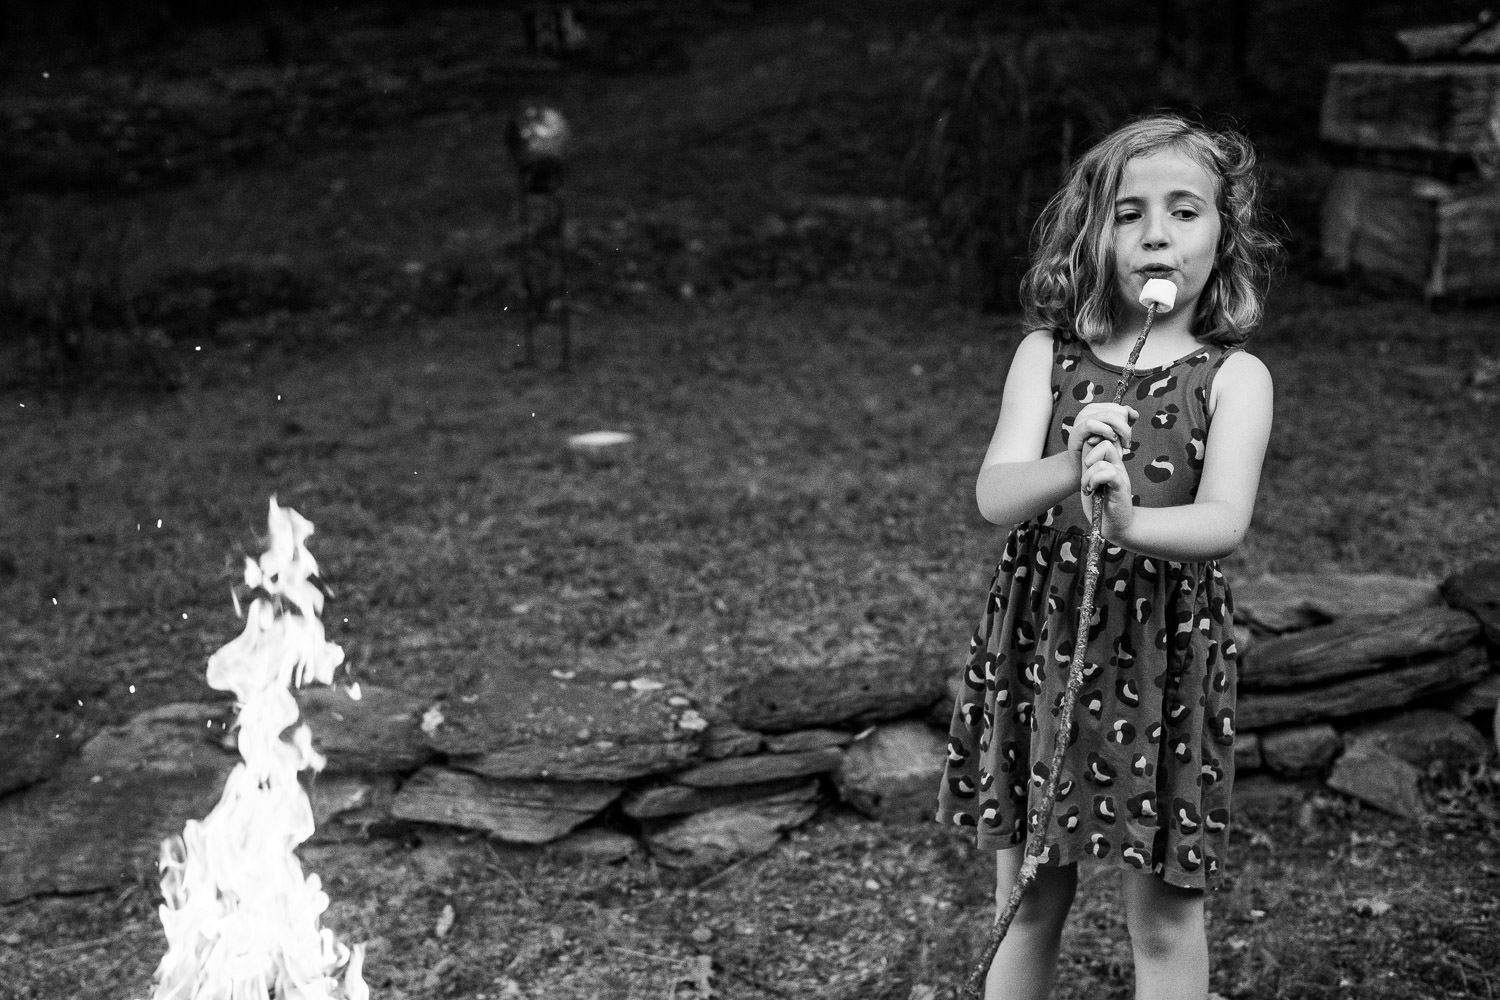 A little girl blows on her toasted marshmallow.